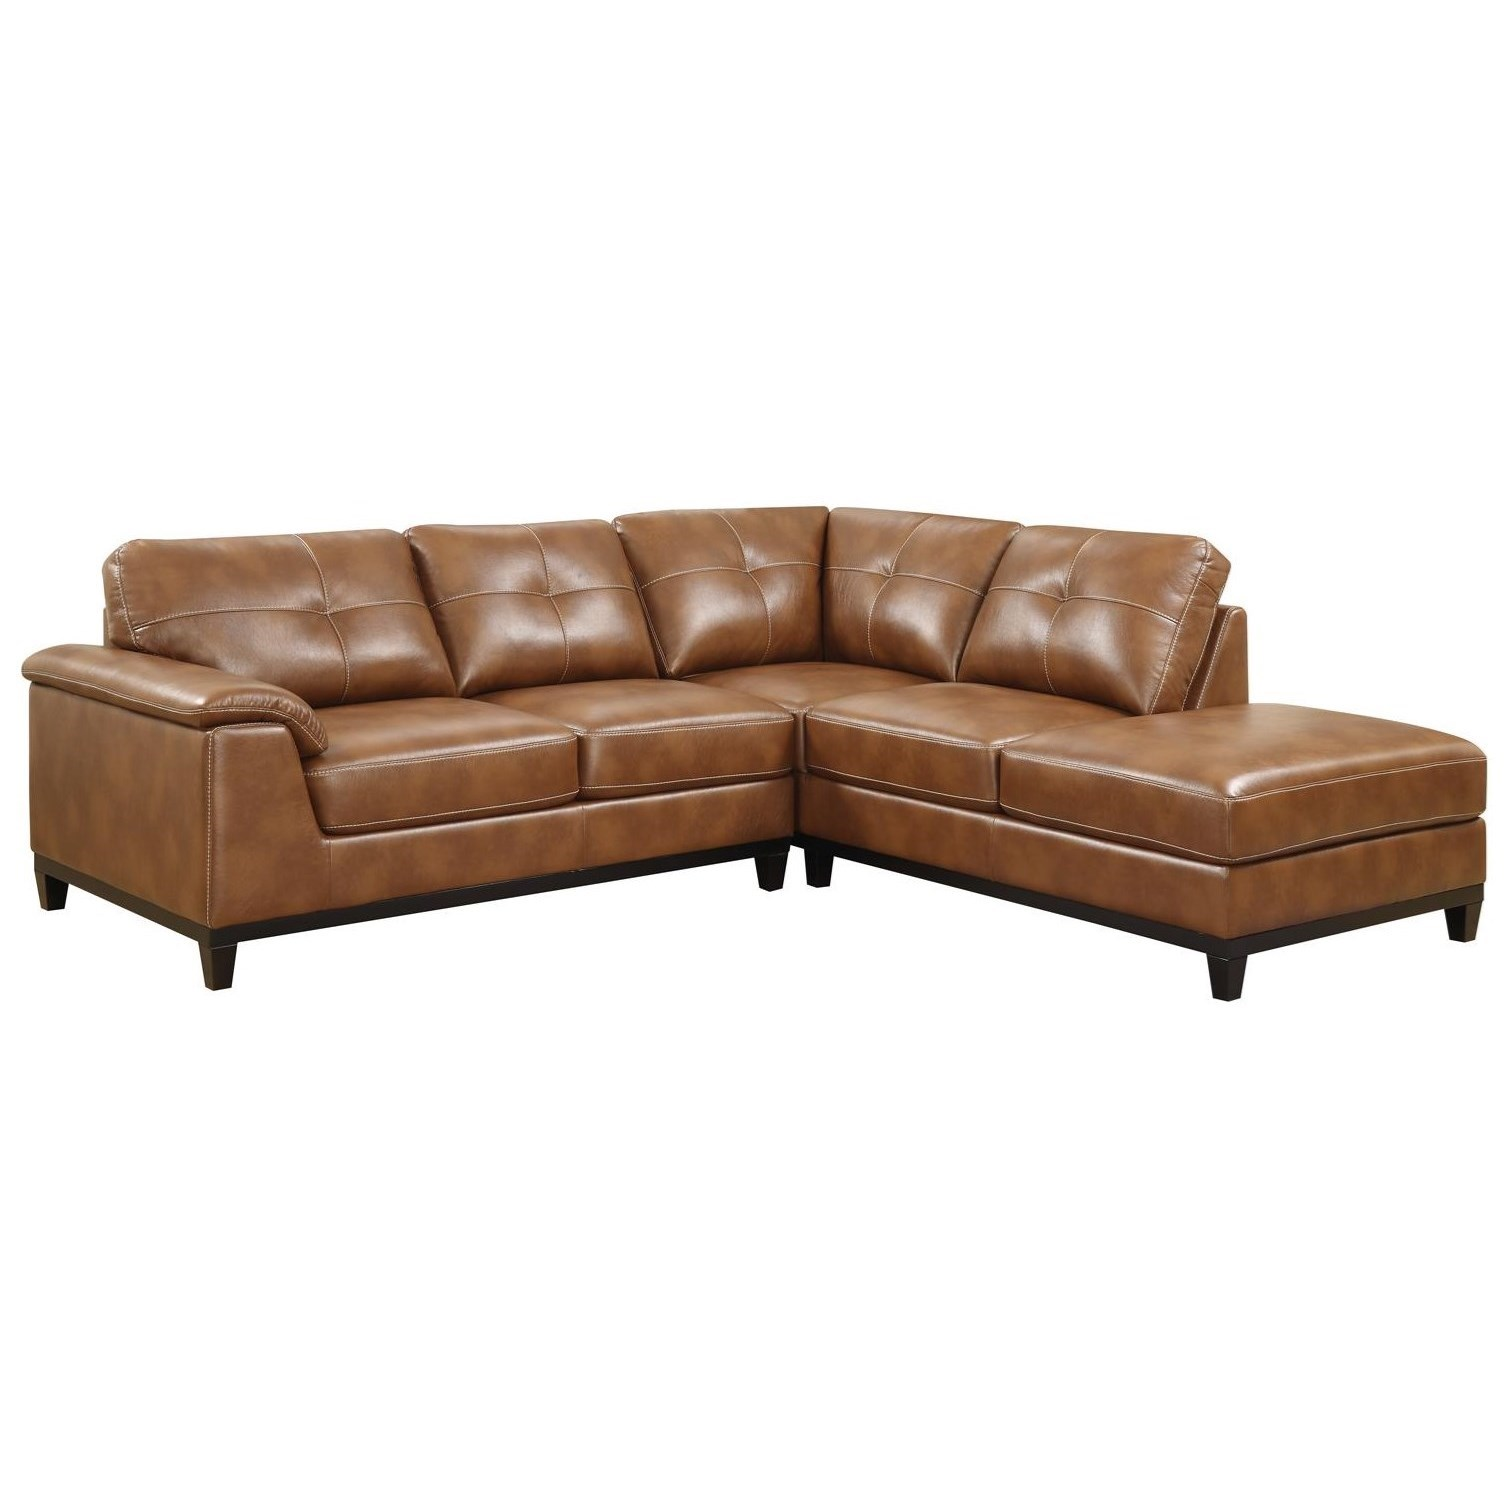 chaise sofas perth warehouse direct bayswater victorian sofa table emerald marquis u4289 12 31 05 k 2 piece sectional